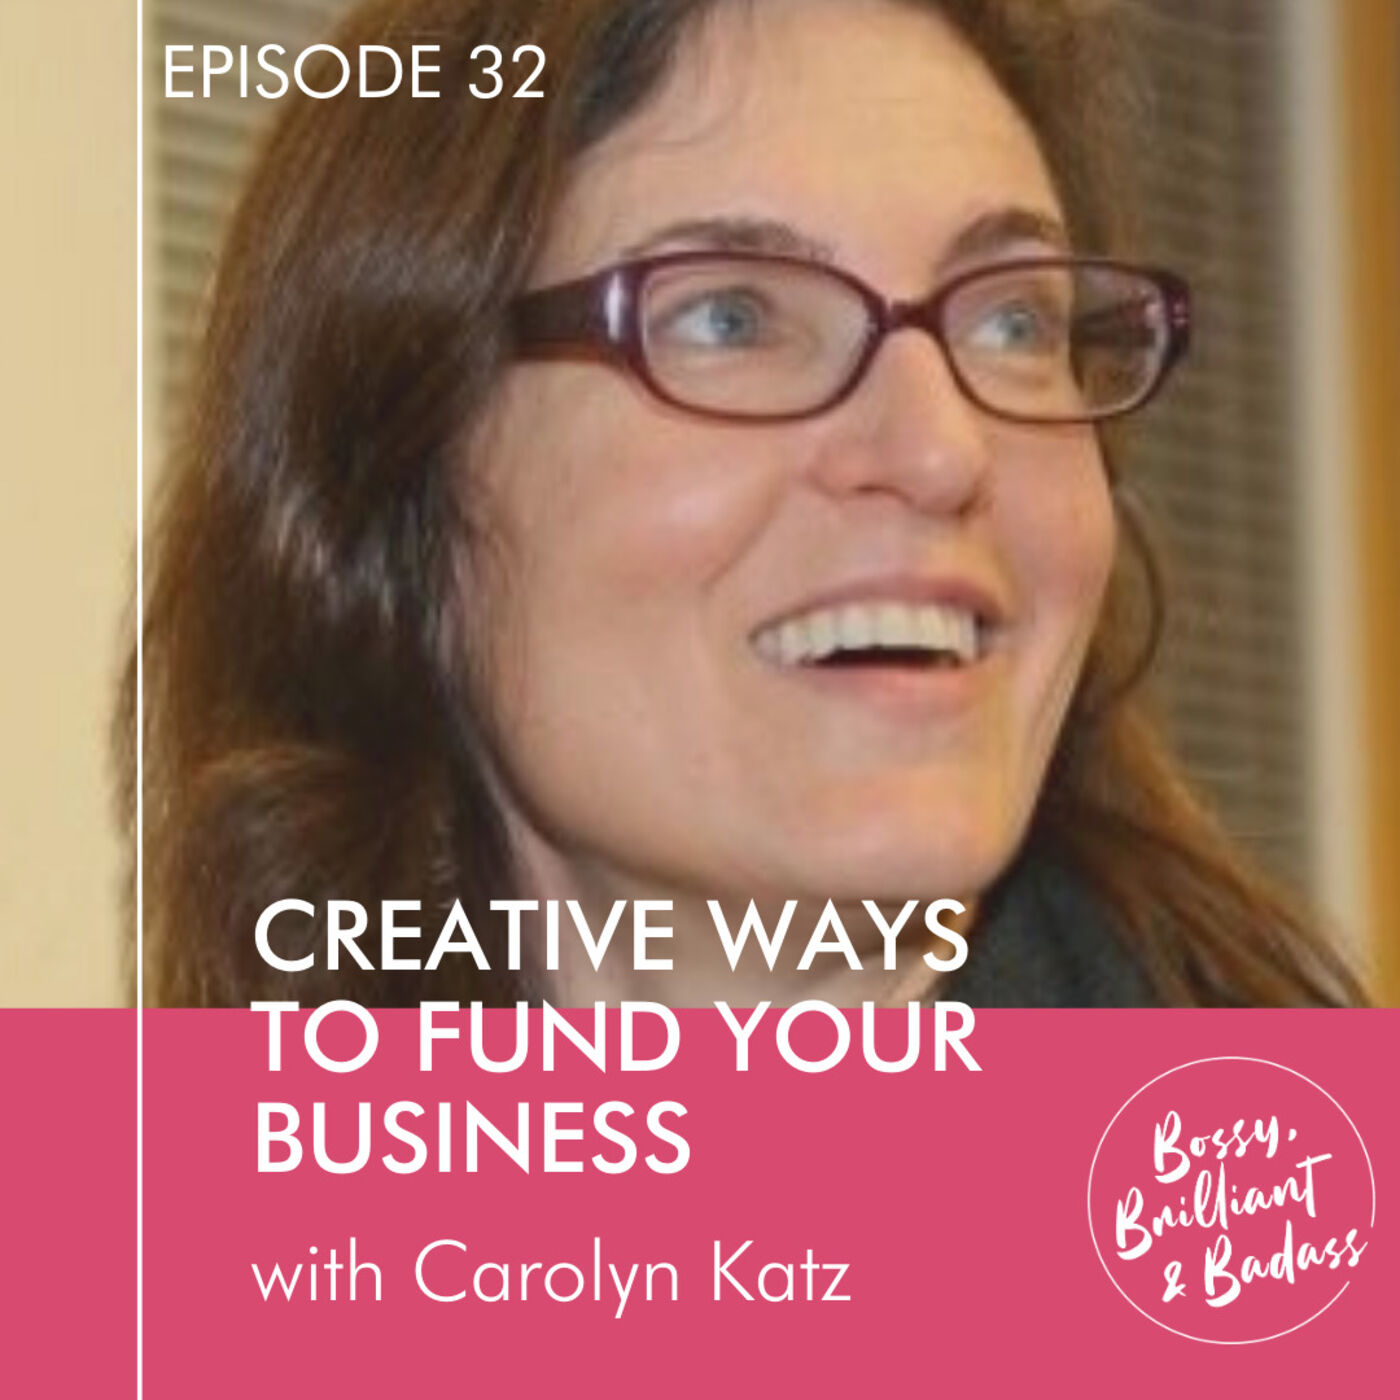 Creative Ways to Find Funding for Your Business (with Carolyn Katz)